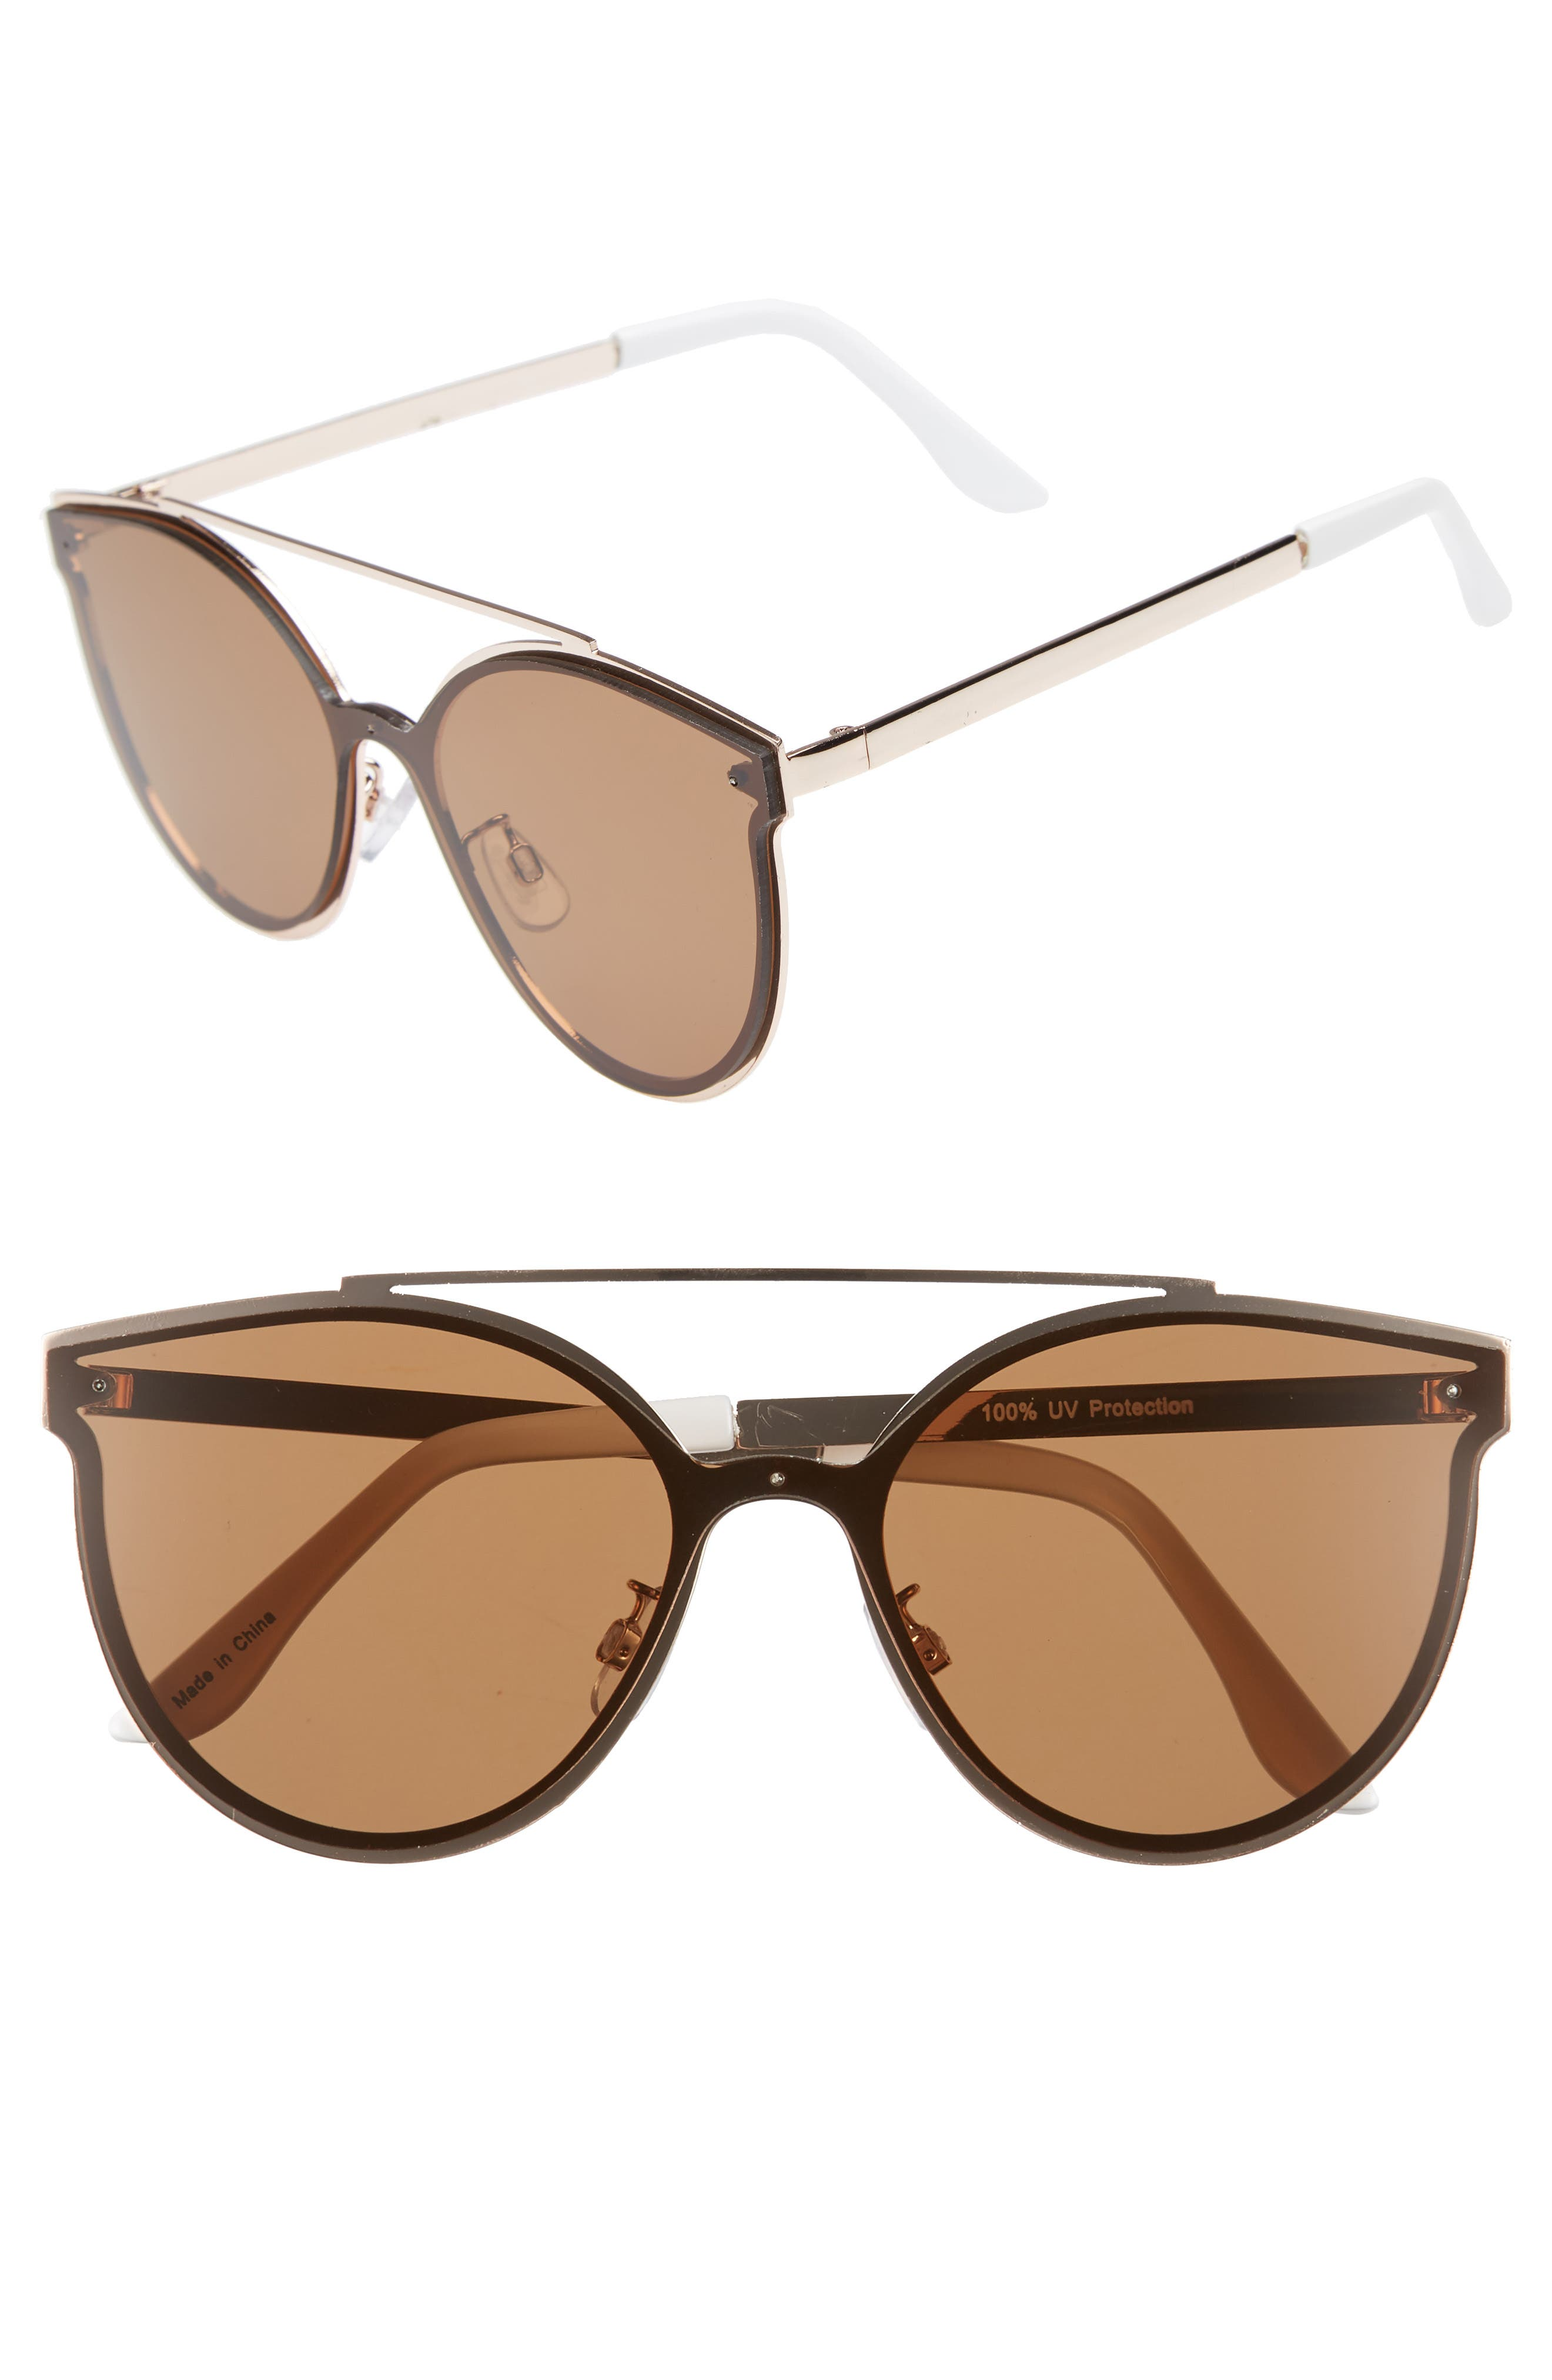 58mm Brow Bar Sunglasses,                         Main,                         color, GOLD